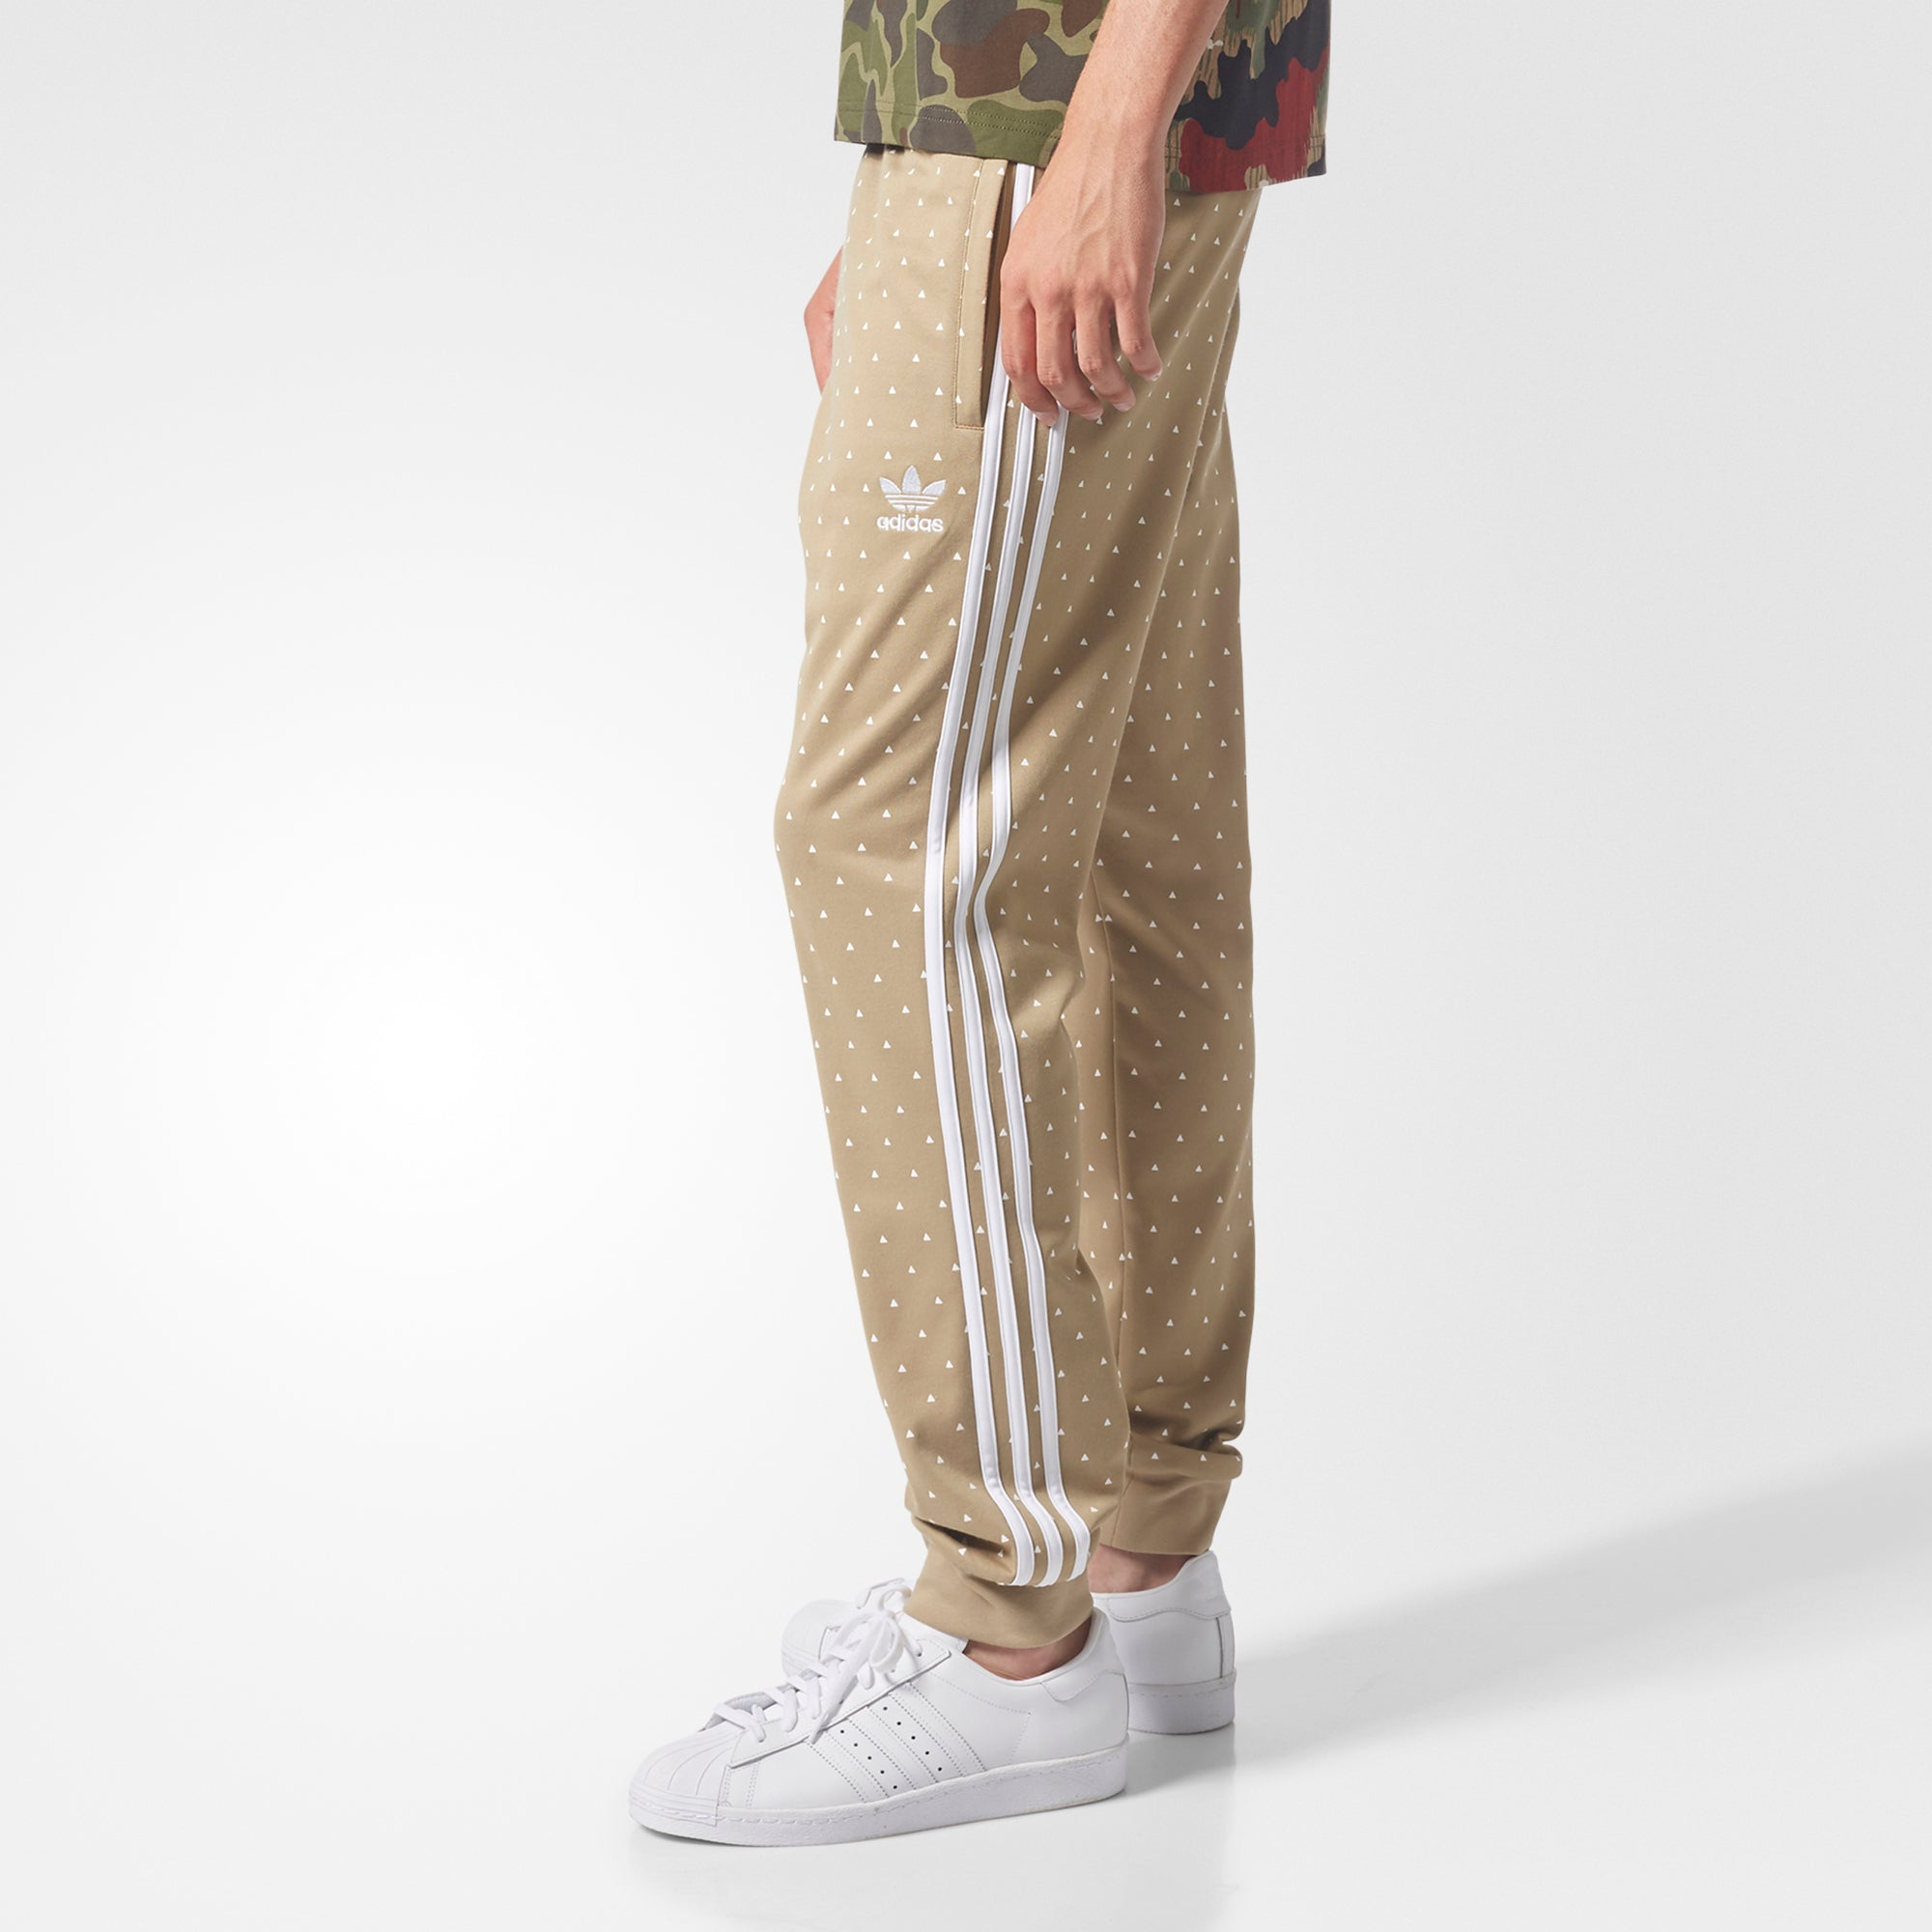 be23dba2e5c04 Men s adidas Originals Pharrell Williams Hu Hiking SST Track Pants Hemp  Beige. 1